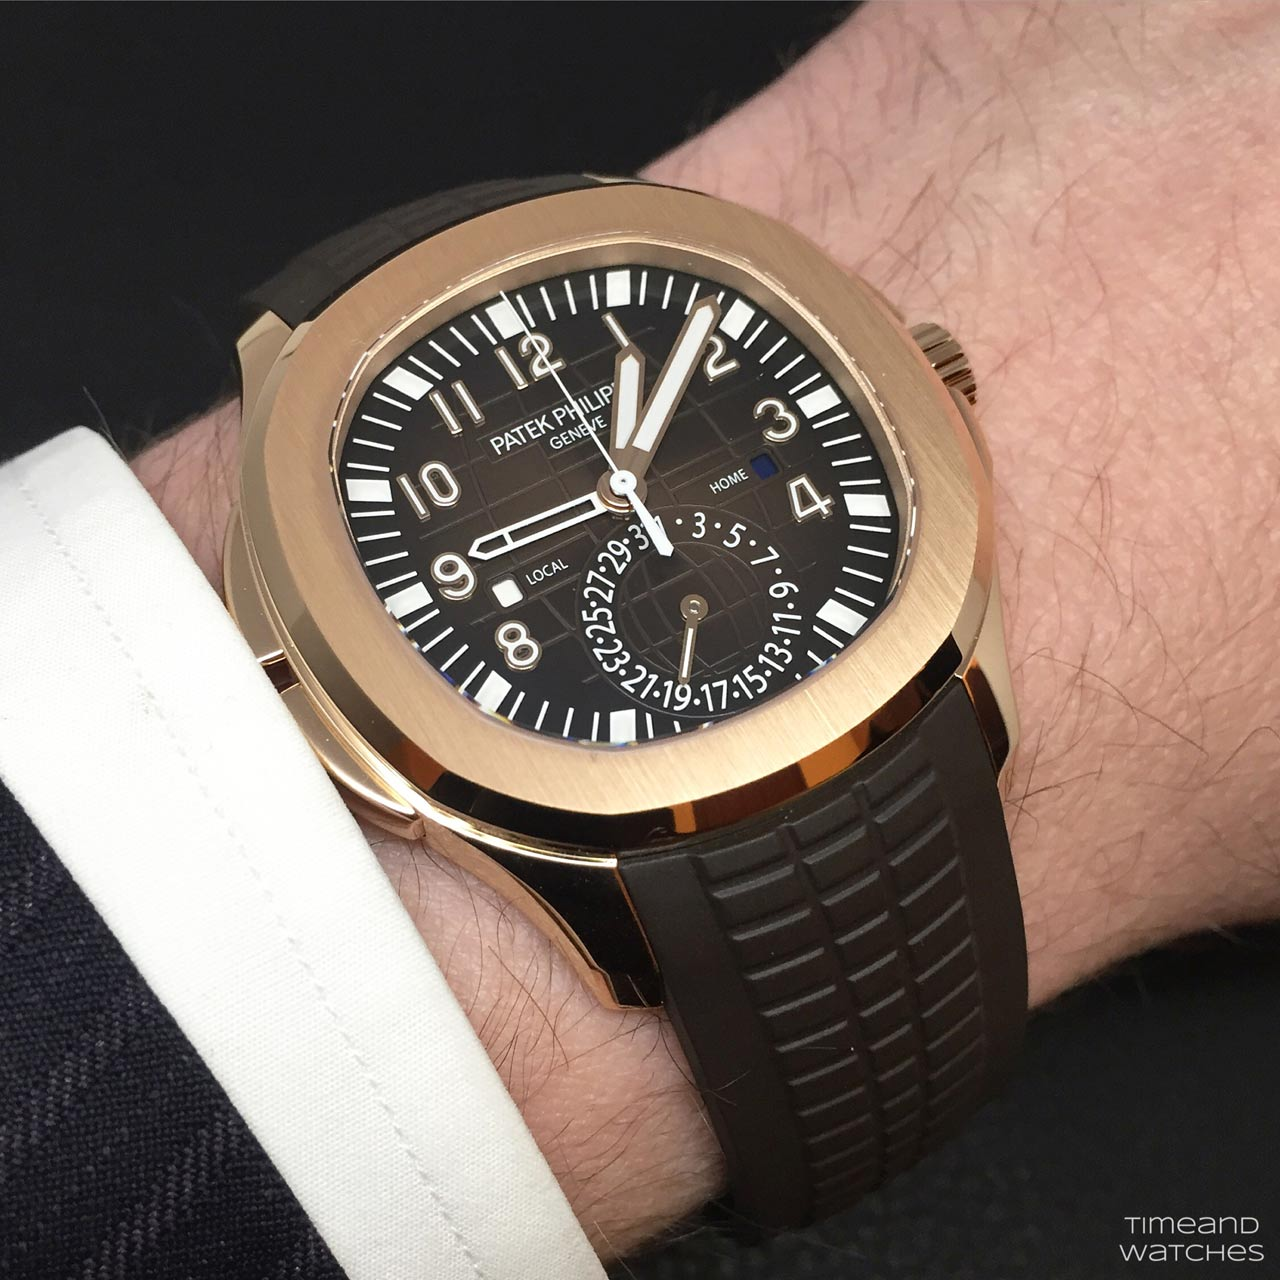 Patek Philippe Aquanaut Travel Time Ref 5164r 001 Time And